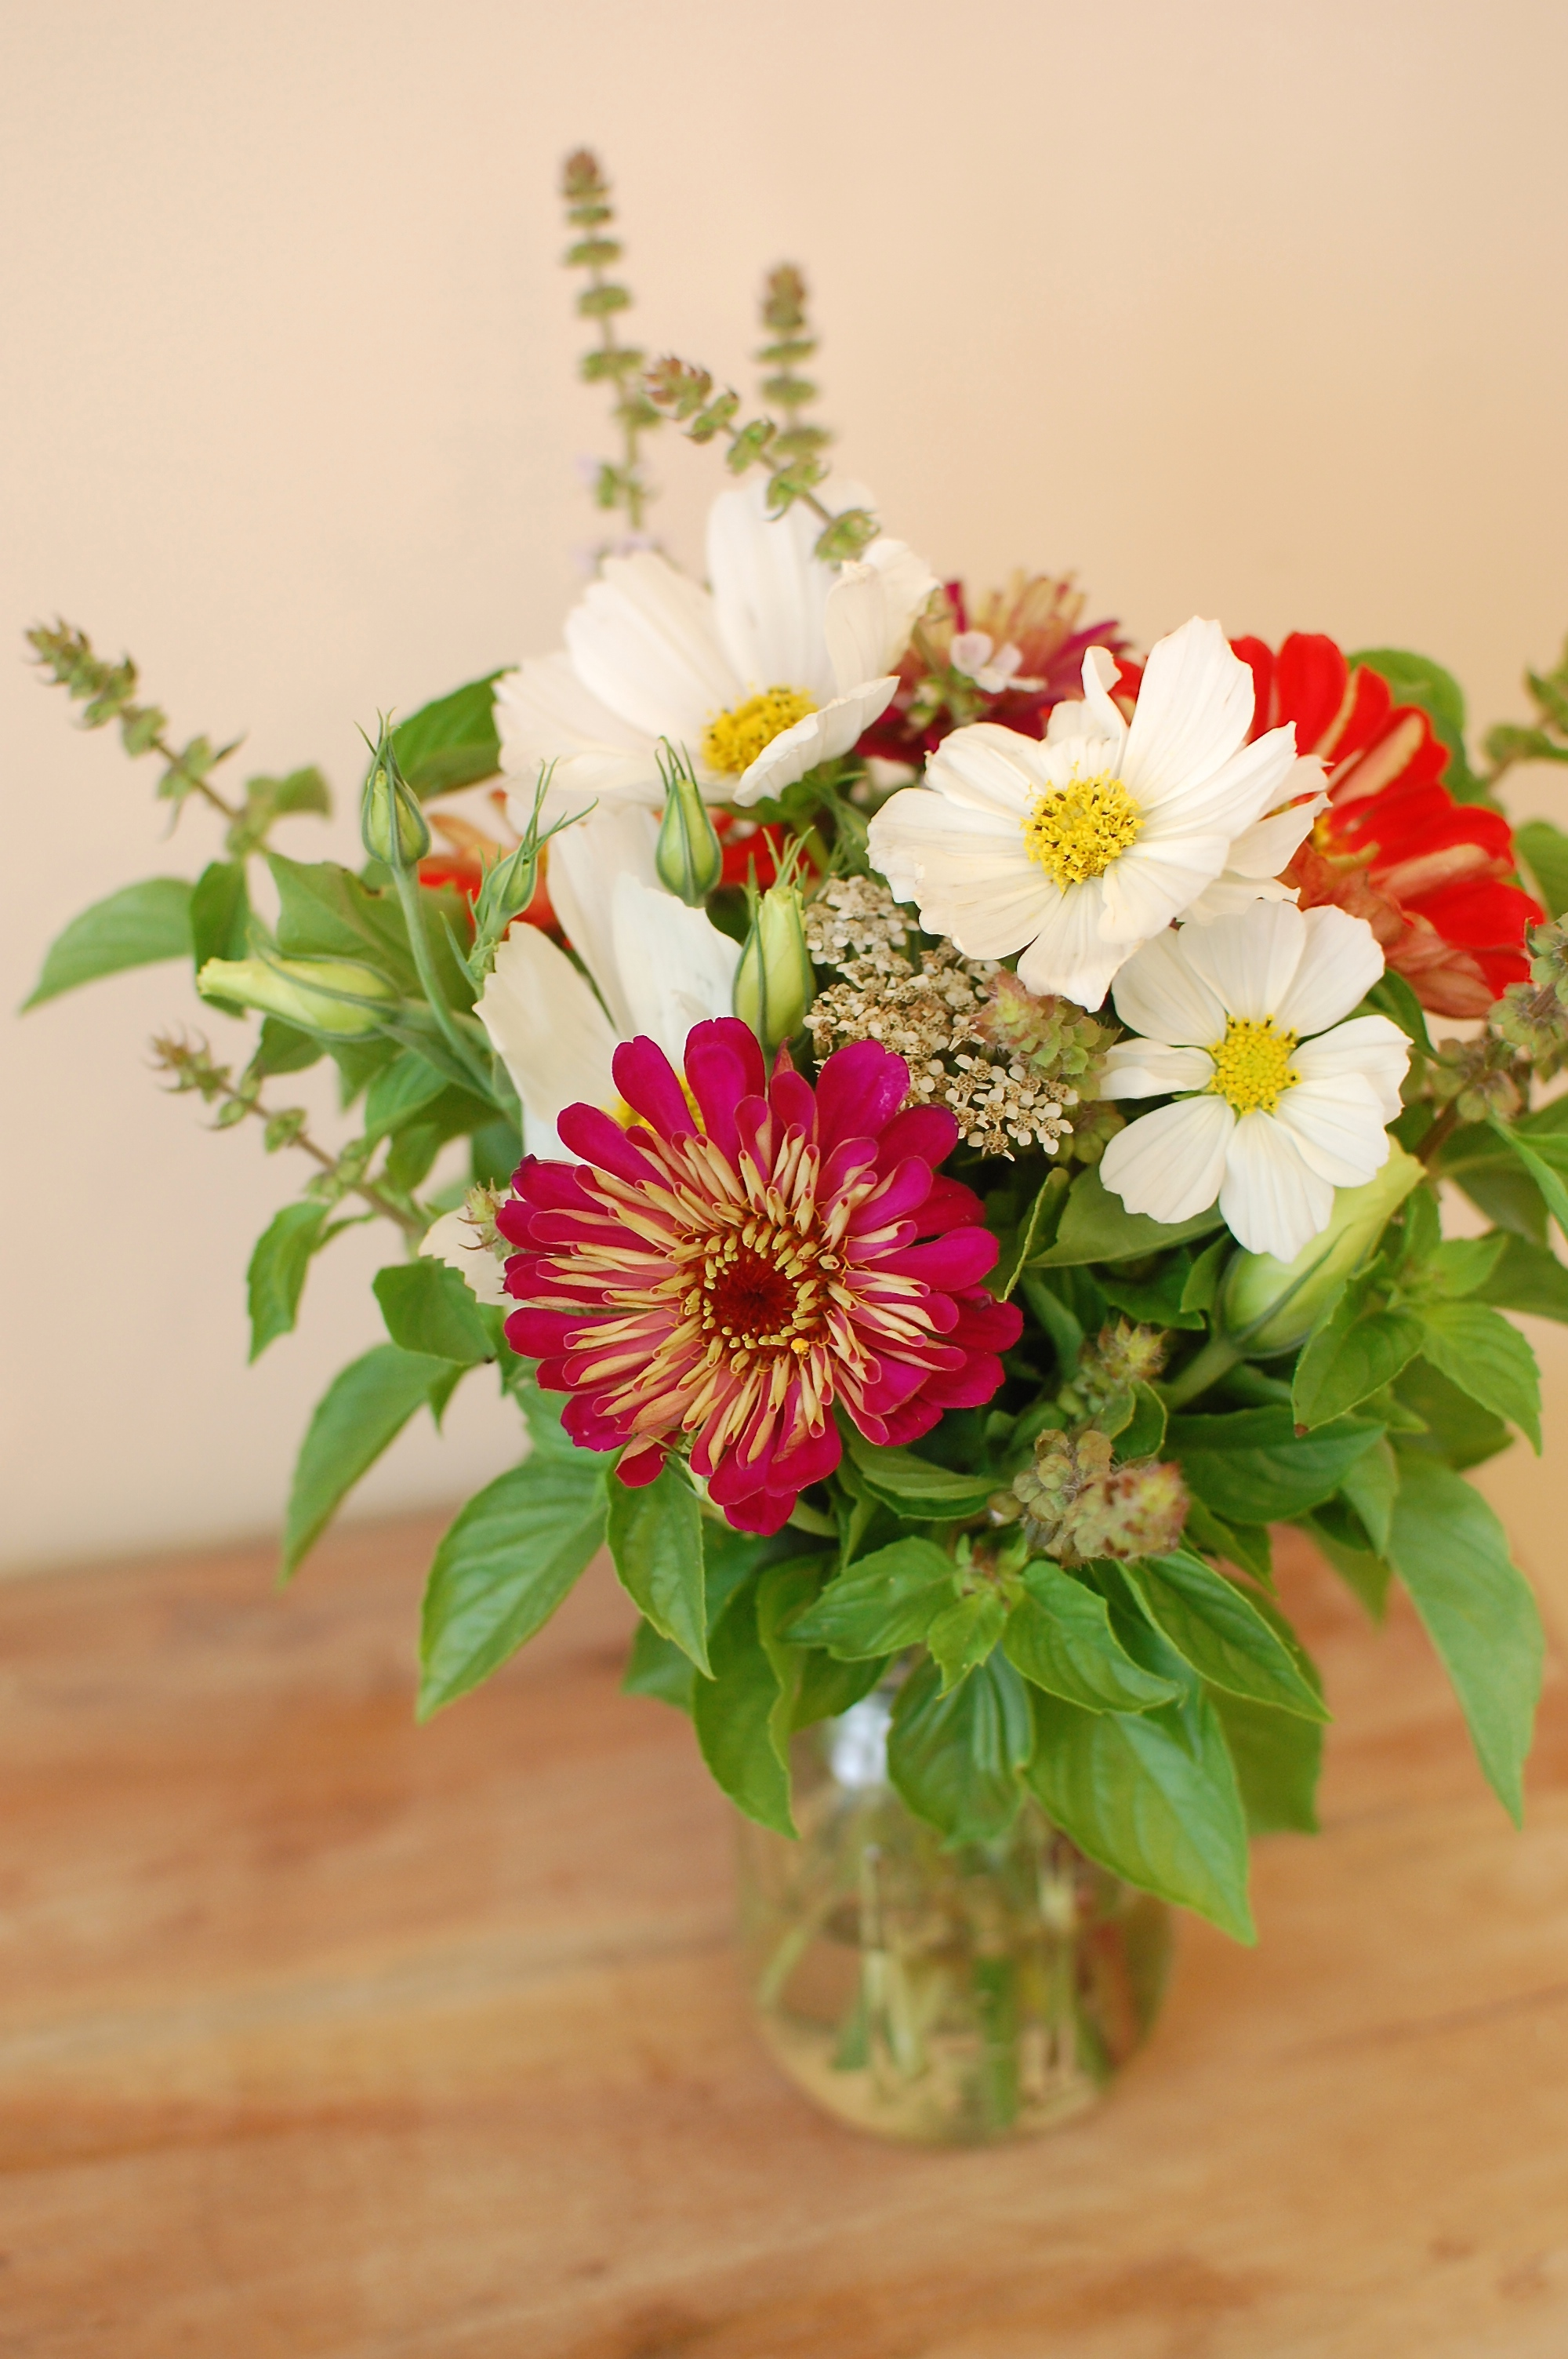 I know, I know...again with the mason jar. It just goes so perfectly with these summer flowers!